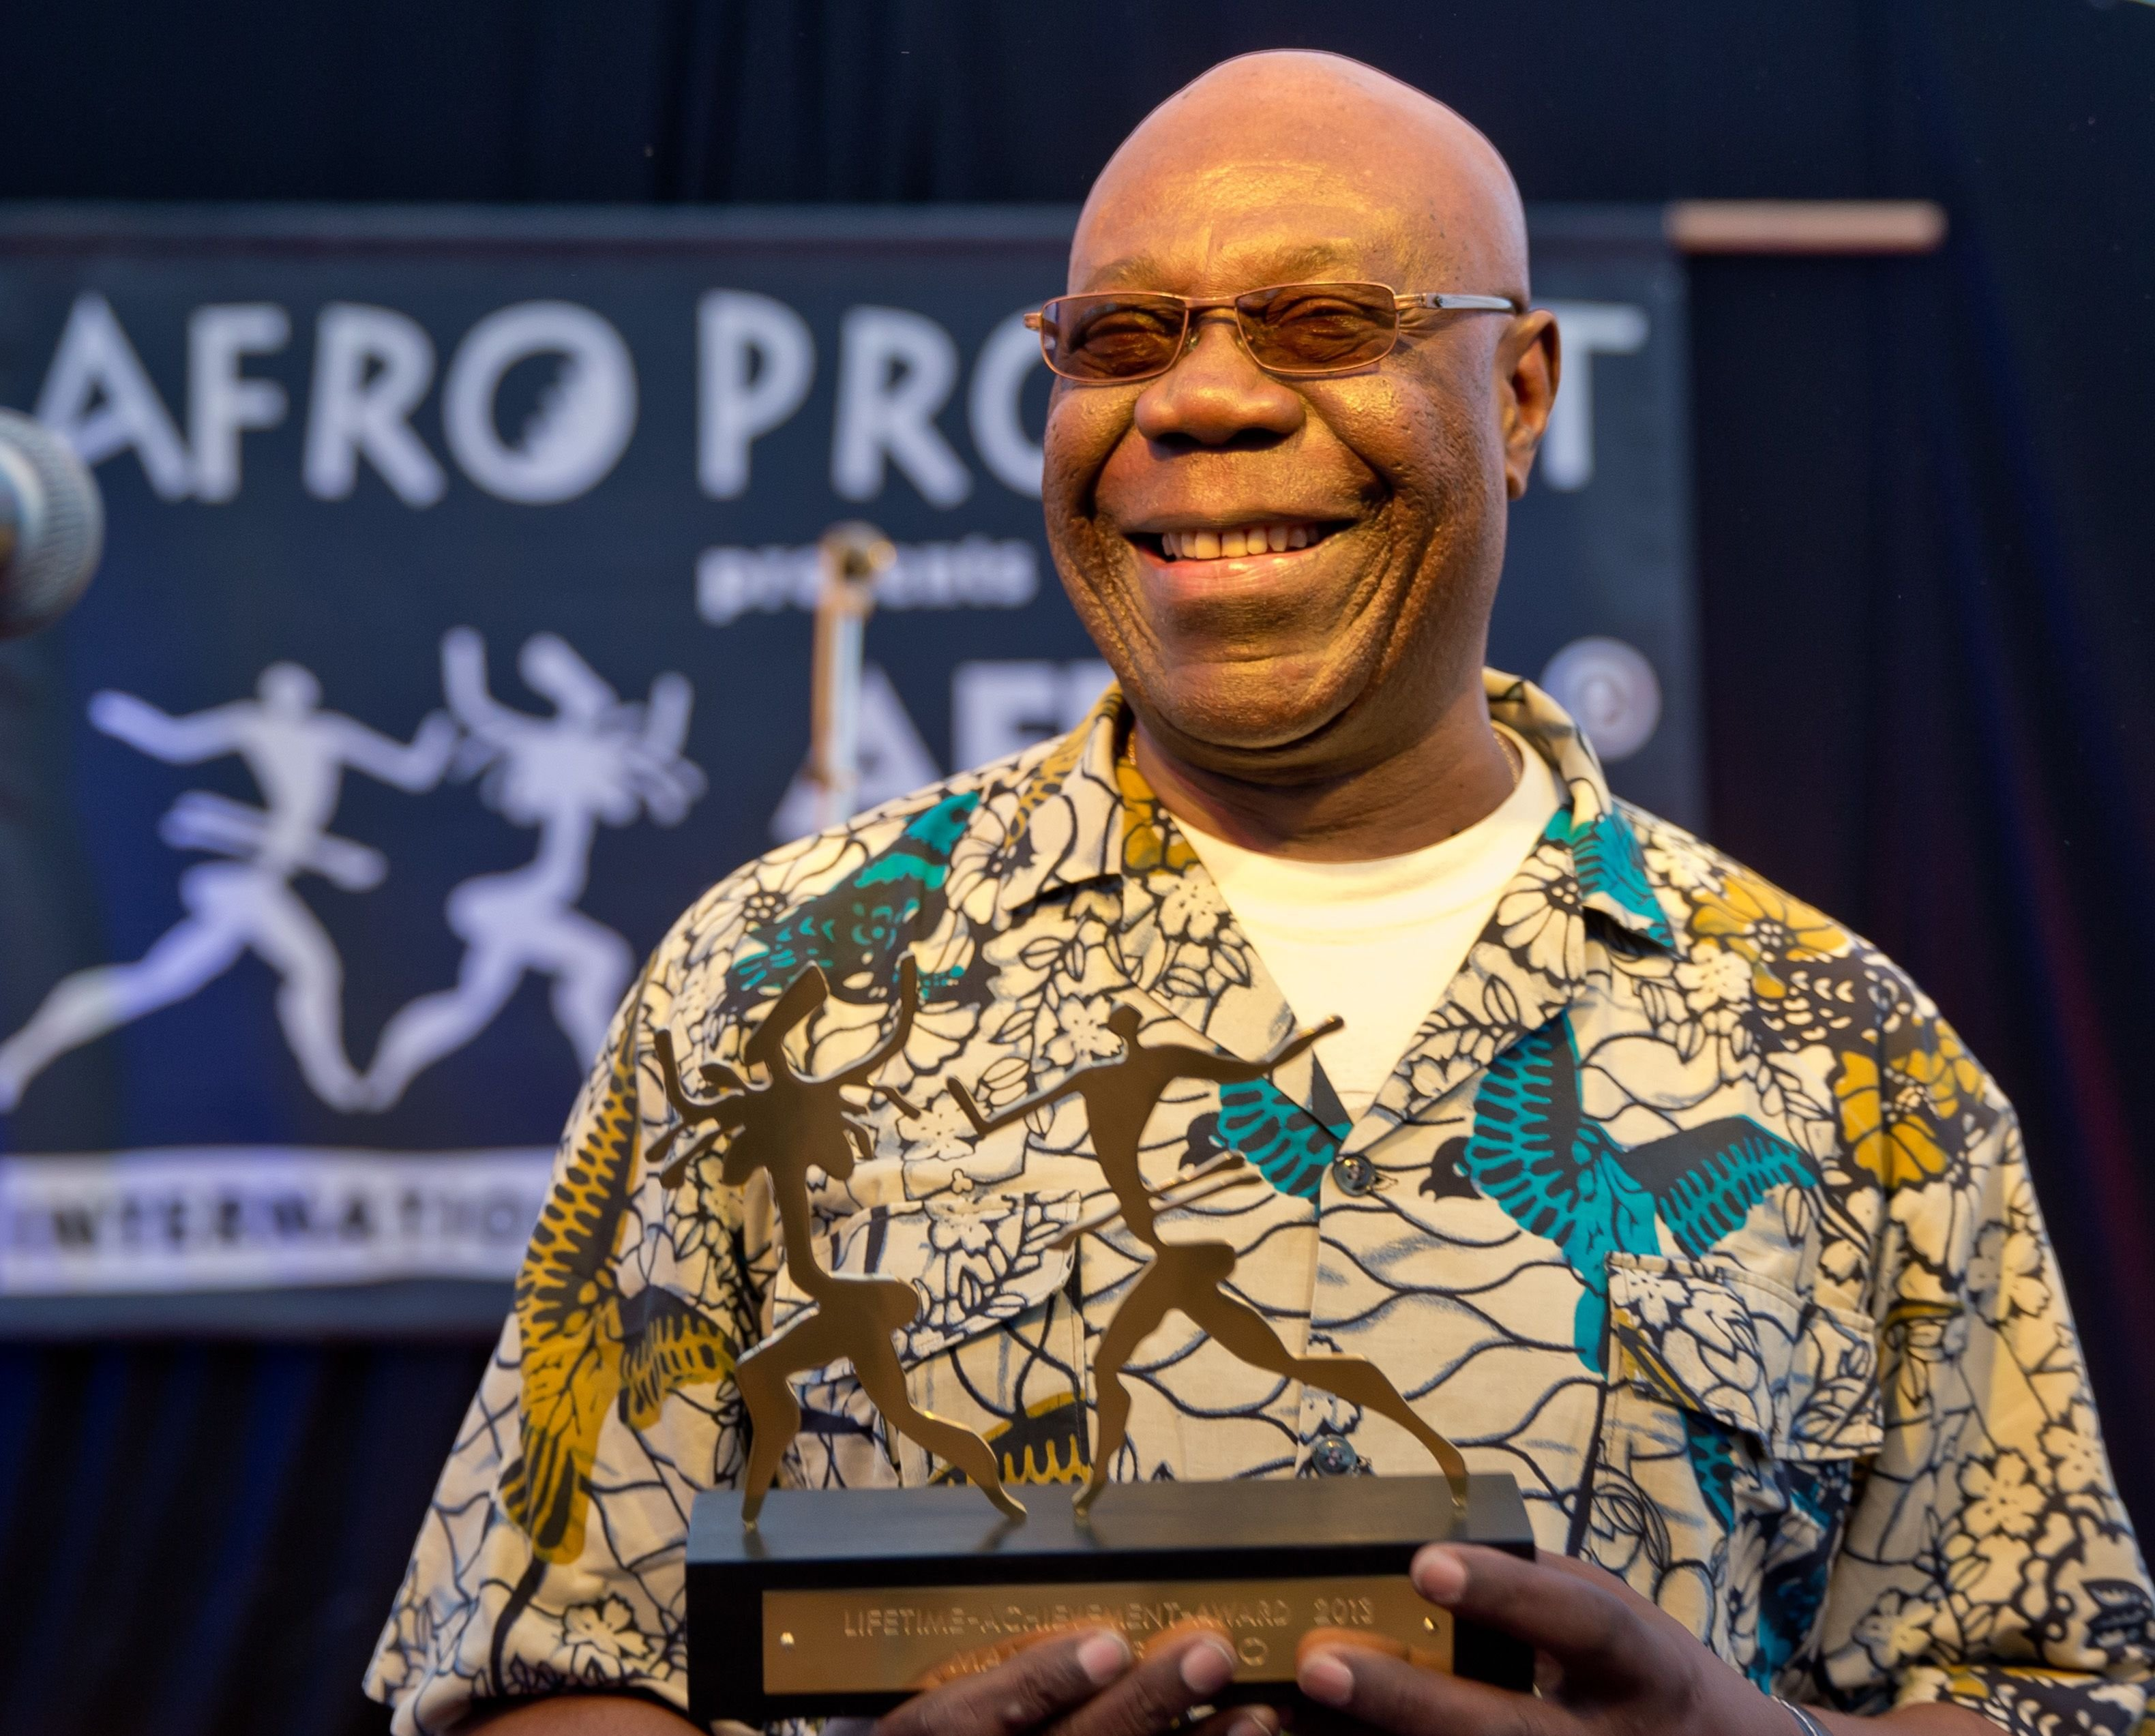 Musician Manu Dibango from Cameroon receives 'Lifetime Achievement Award' during the opening of 25th Africa festival in Wuerzburg, Germany, 30 May 2013. | Source: Getty Images